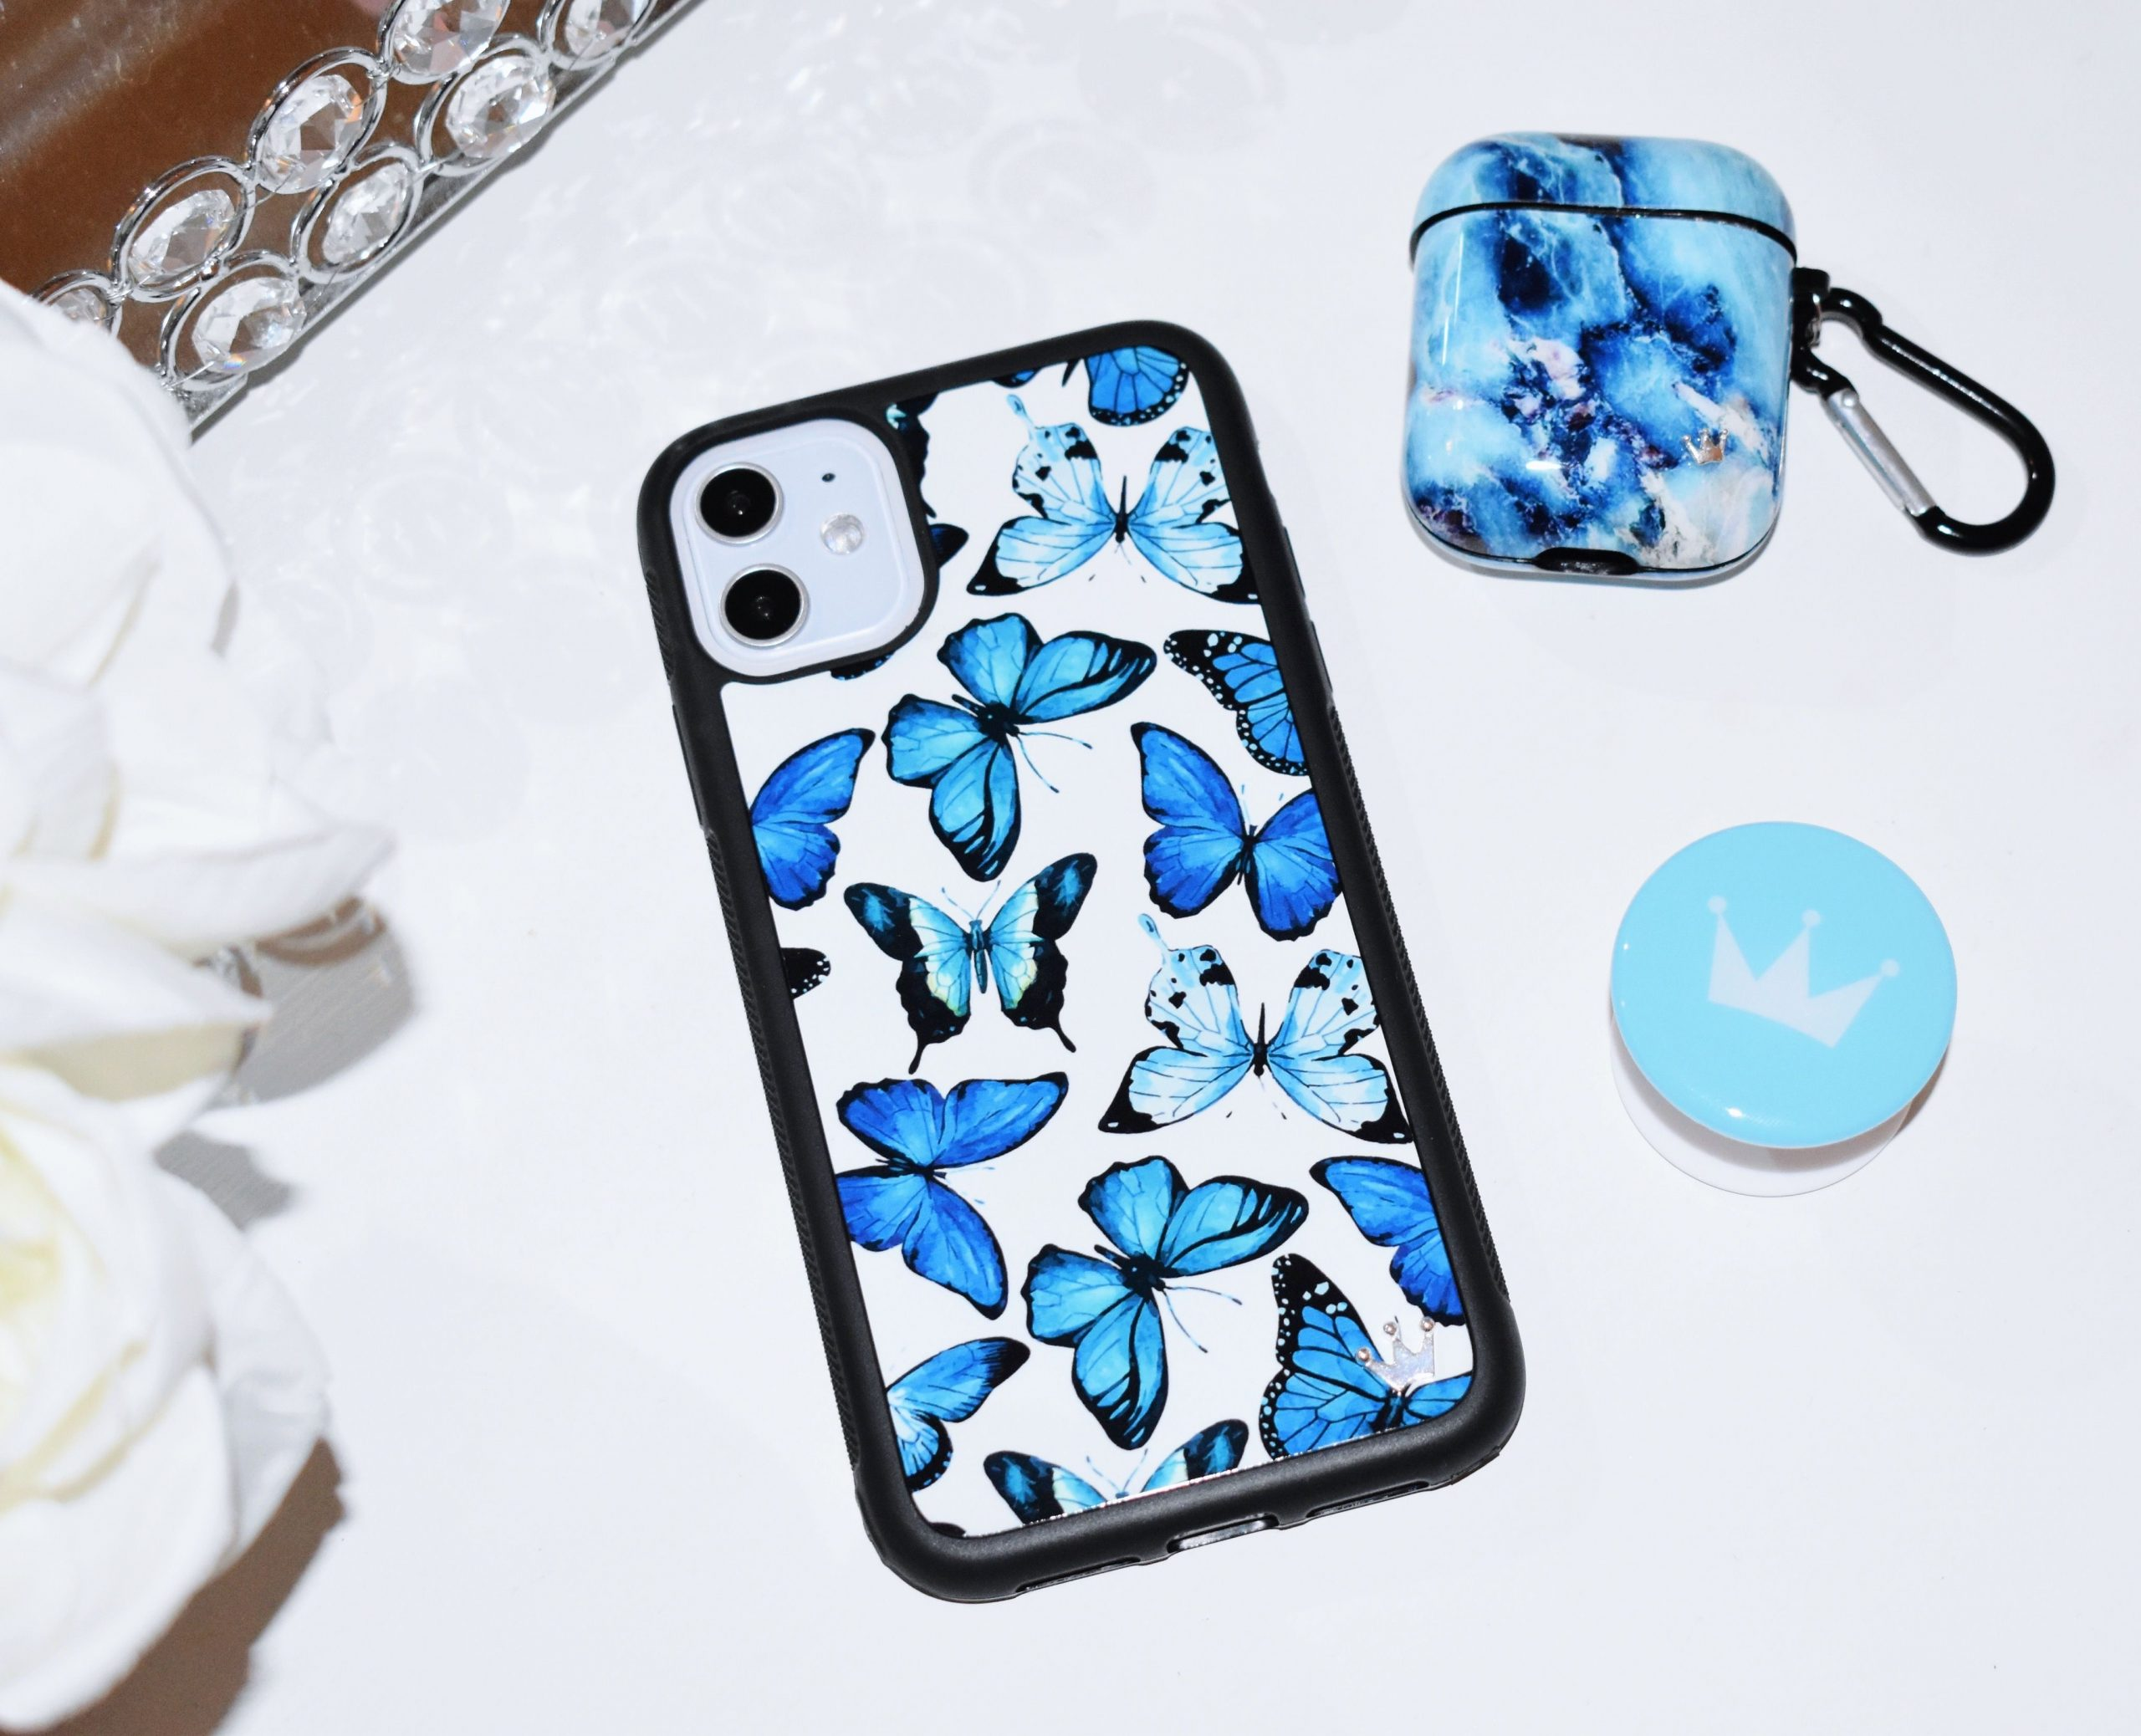 Types of Phone cases